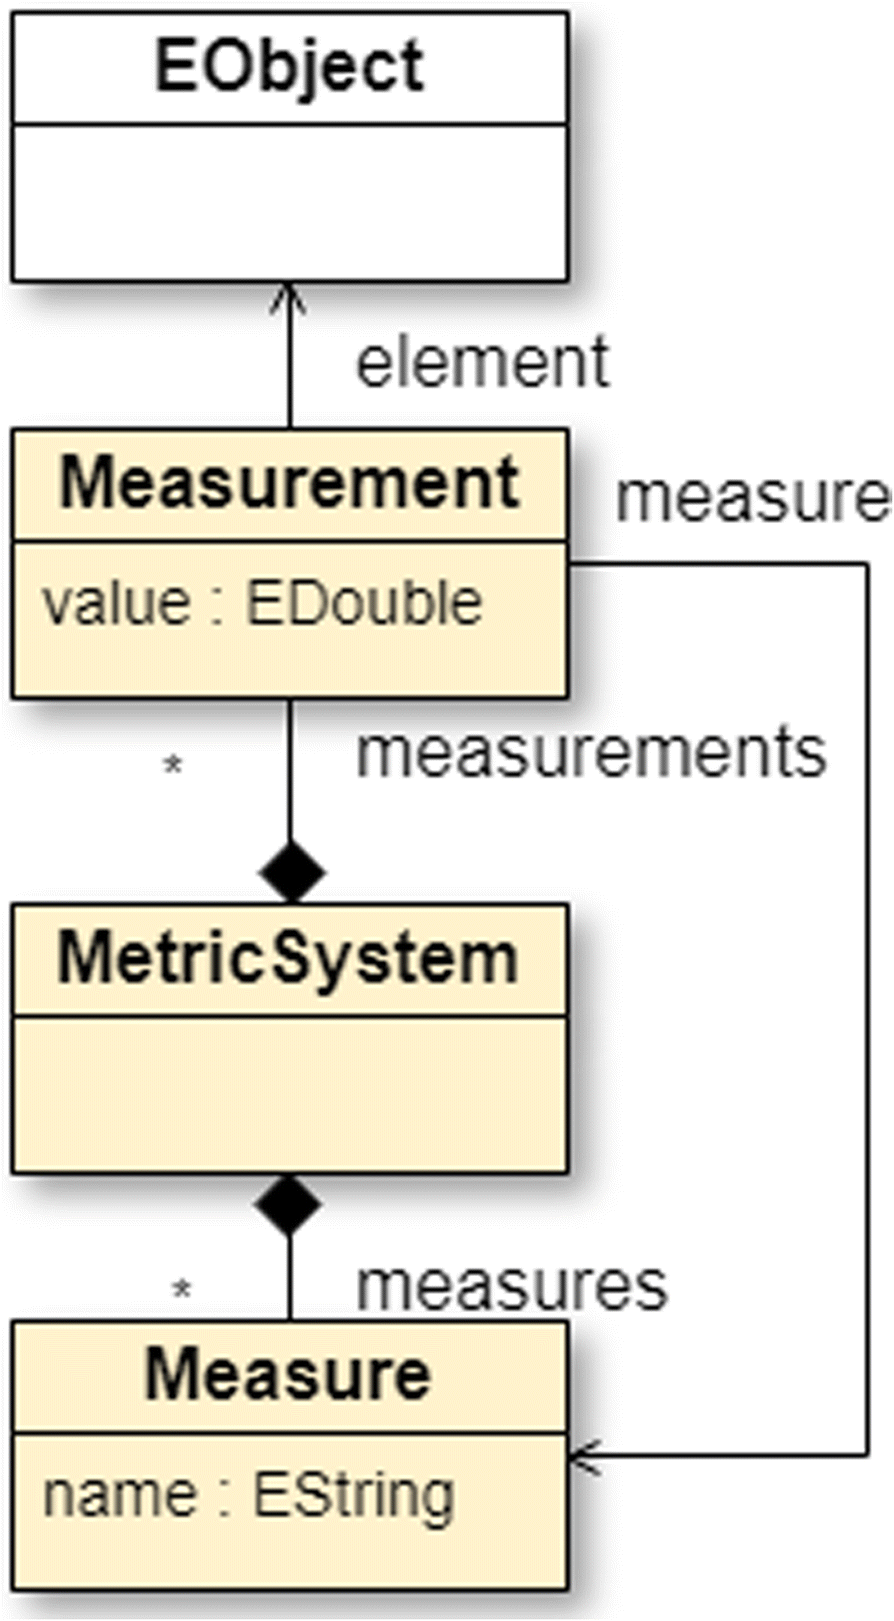 Metric-centered and technology-independent architectural